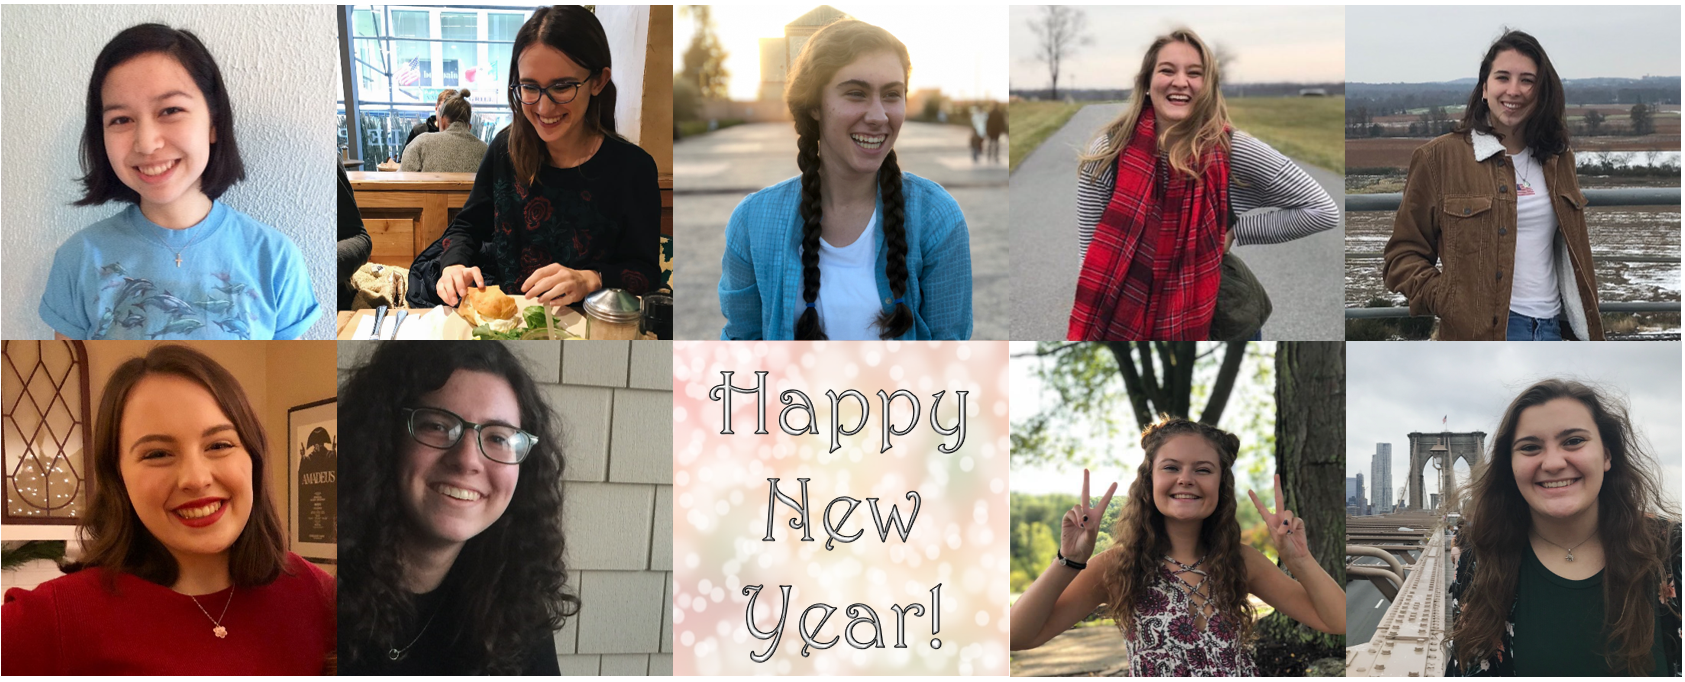 Some members of the Features staff share their resolutions for 2019. From left to right: Julia Chin, Kelsey DiPenta, Thea Toocheck, Lizzie Hobbs, Cameron D'Amica (end of top row), Phoebe Doscher, Danielle Sicotte, Sam Shourds, and Maddie Neiman (Photos courtesy of writers and compiled by Maddie Neiman/The Gettysburgian).